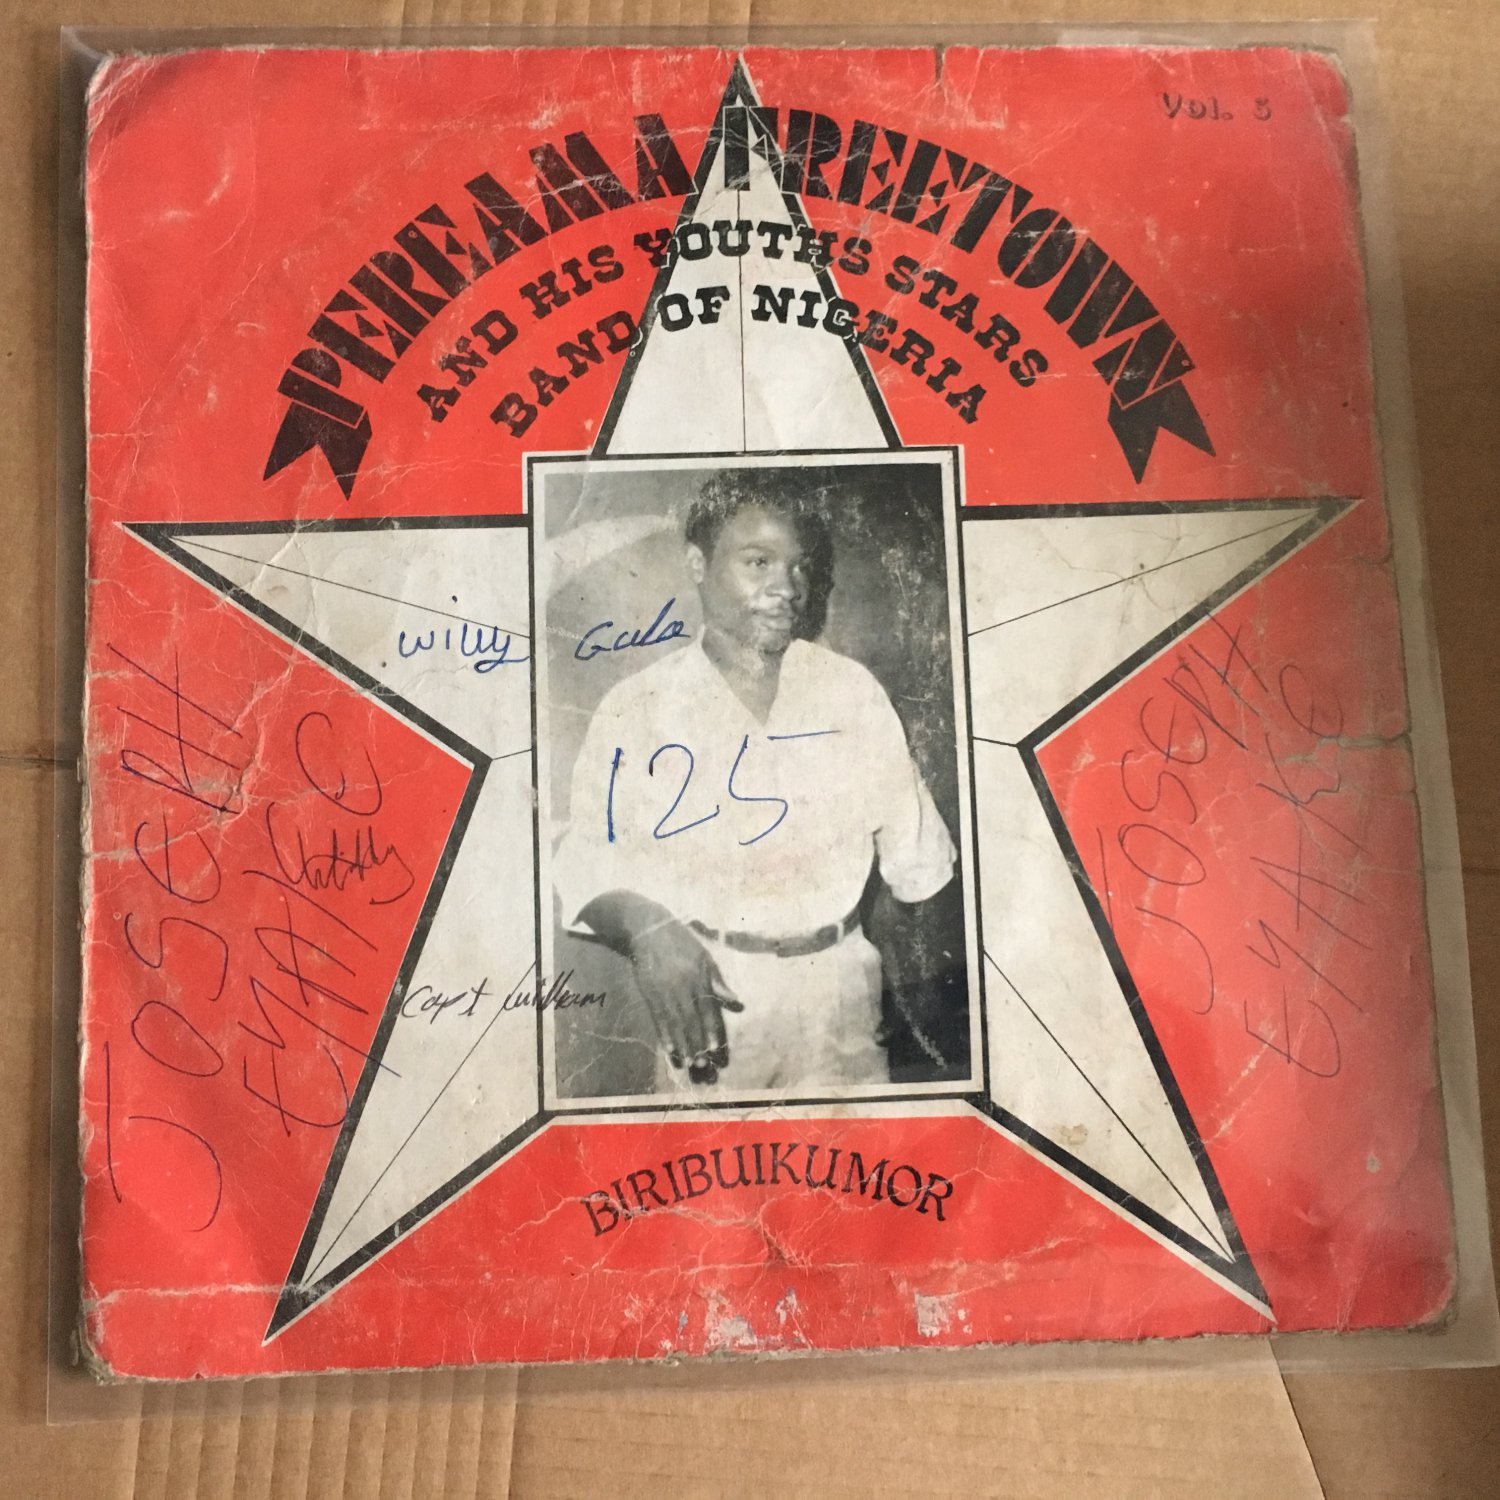 PEREAMA FREE TOWN & HIS YOUTHS STARS BAND LP vol.3 NIGERIA mp3 LISTEN